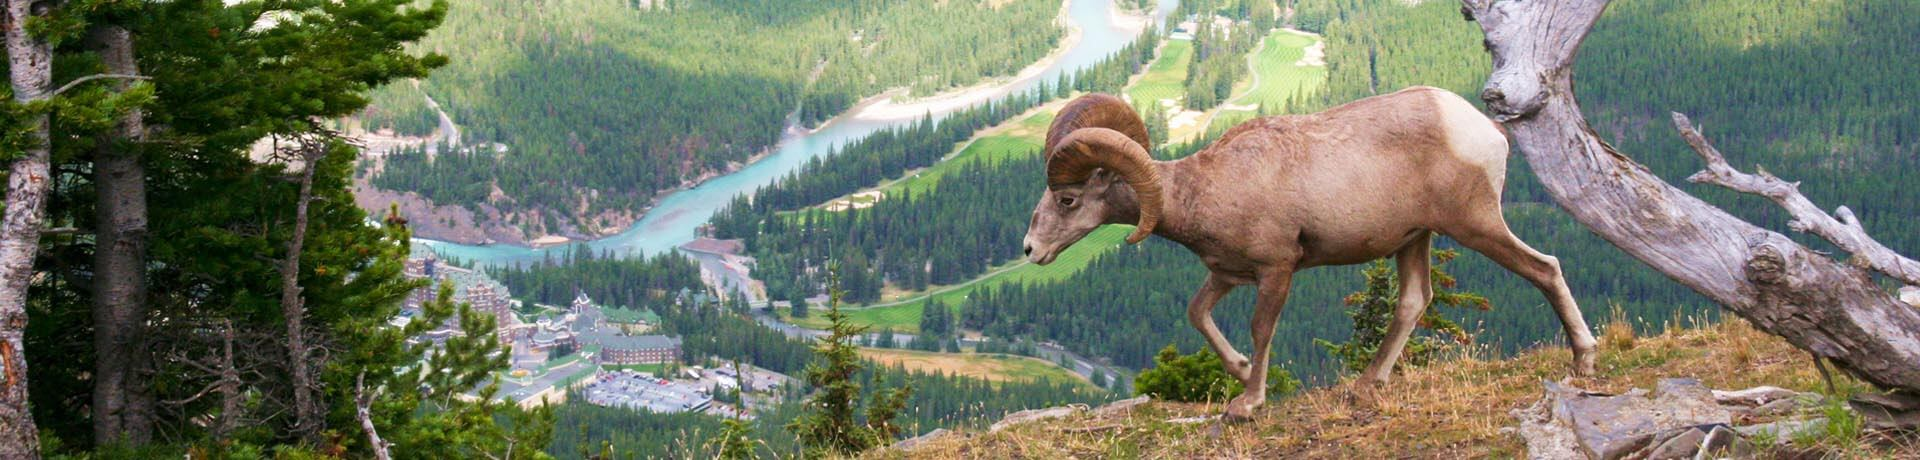 Big horned sheep in the Rocky Mountains